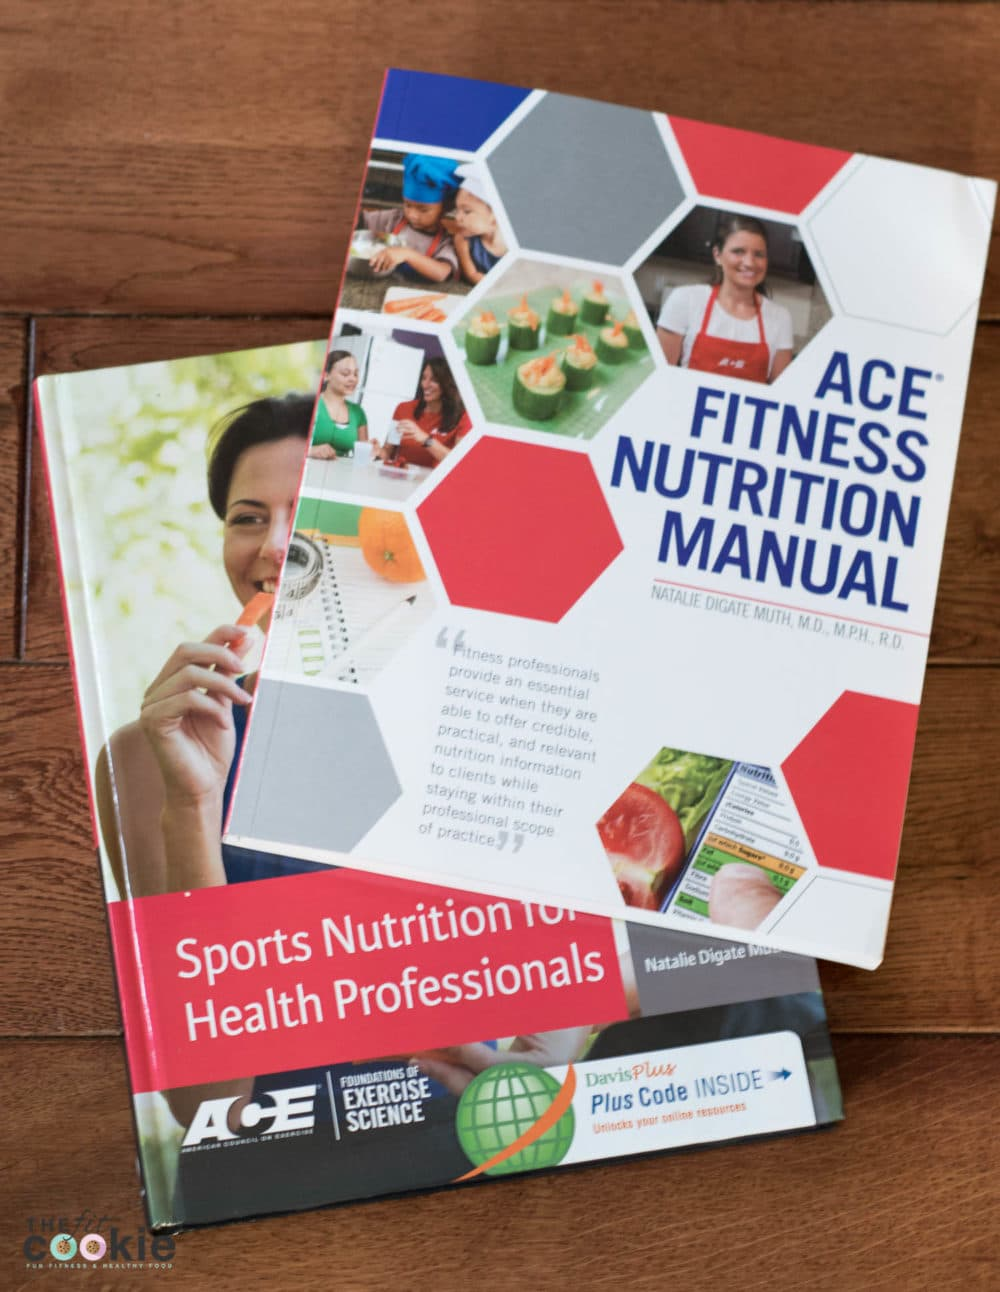 ACE Fitness Nutrition Specialist Certification - @TheFitCookie #AD @ACEFitness #nutrition